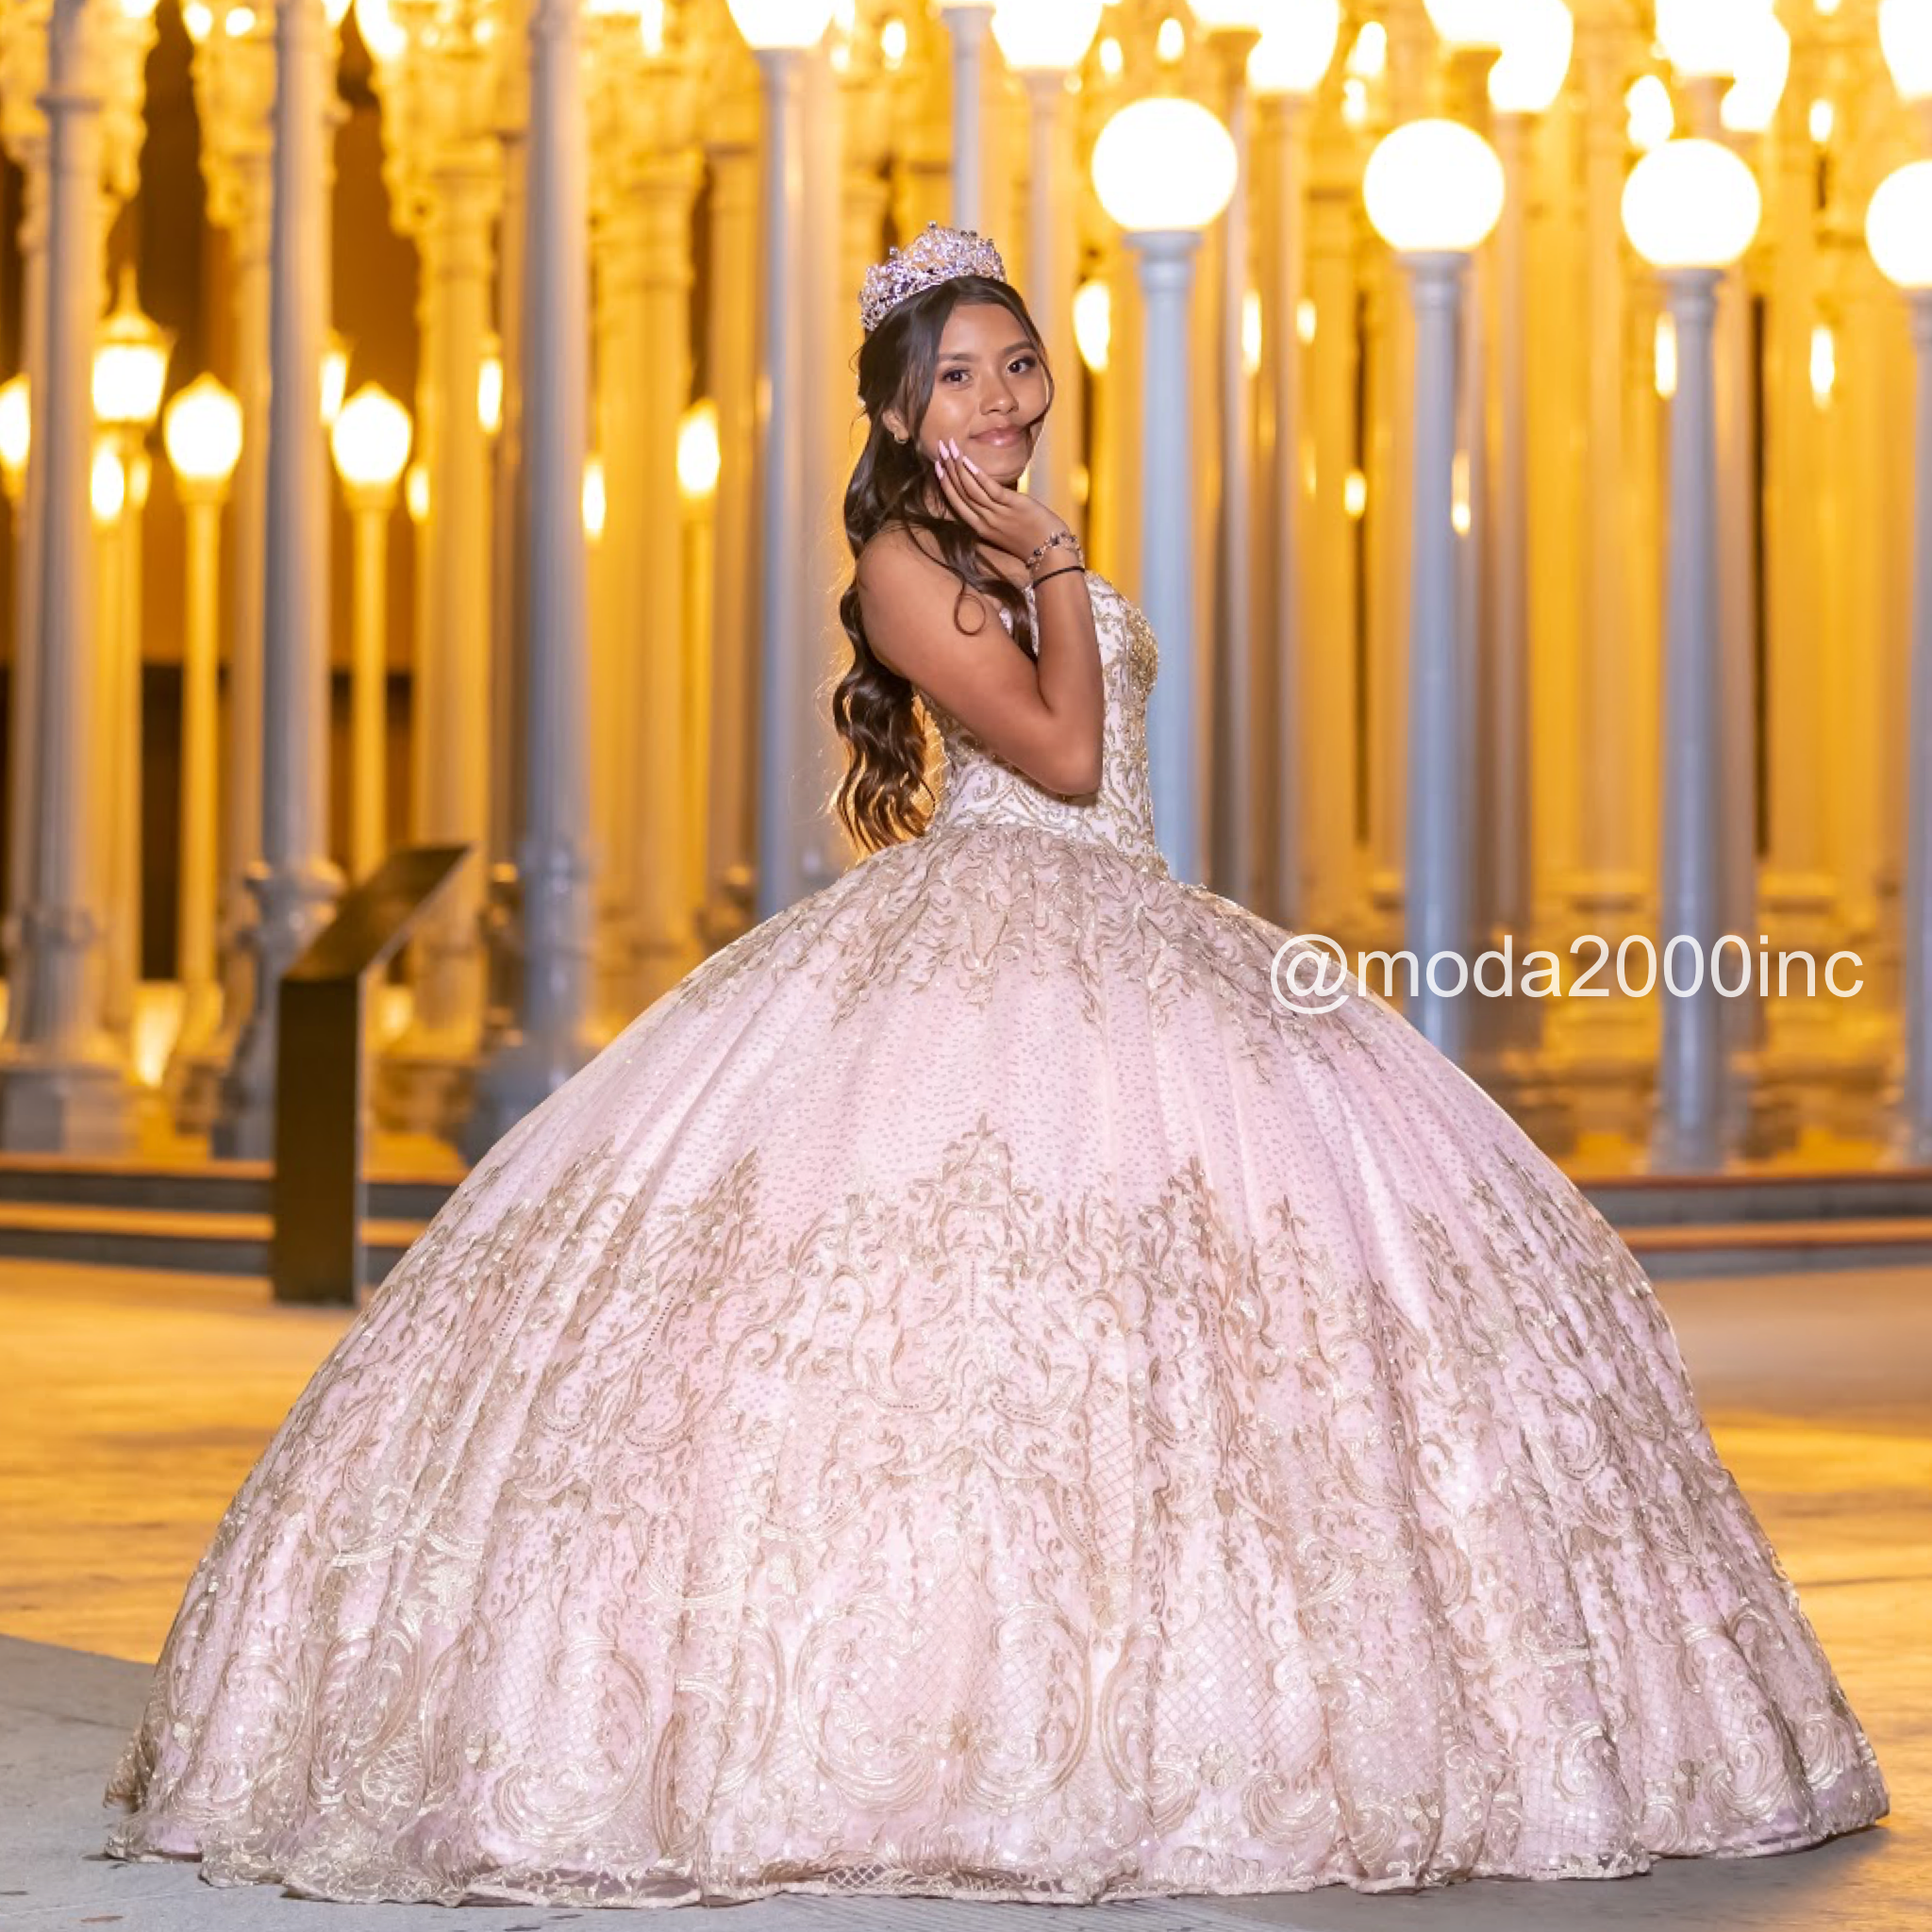 Beautiful Sweetheart Styled Blush Pink With Gold Squince Dress In 2021 Satin Homecoming Dress Pretty Quinceanera Dresses Quincenera Dresses [ 2048 x 2048 Pixel ]